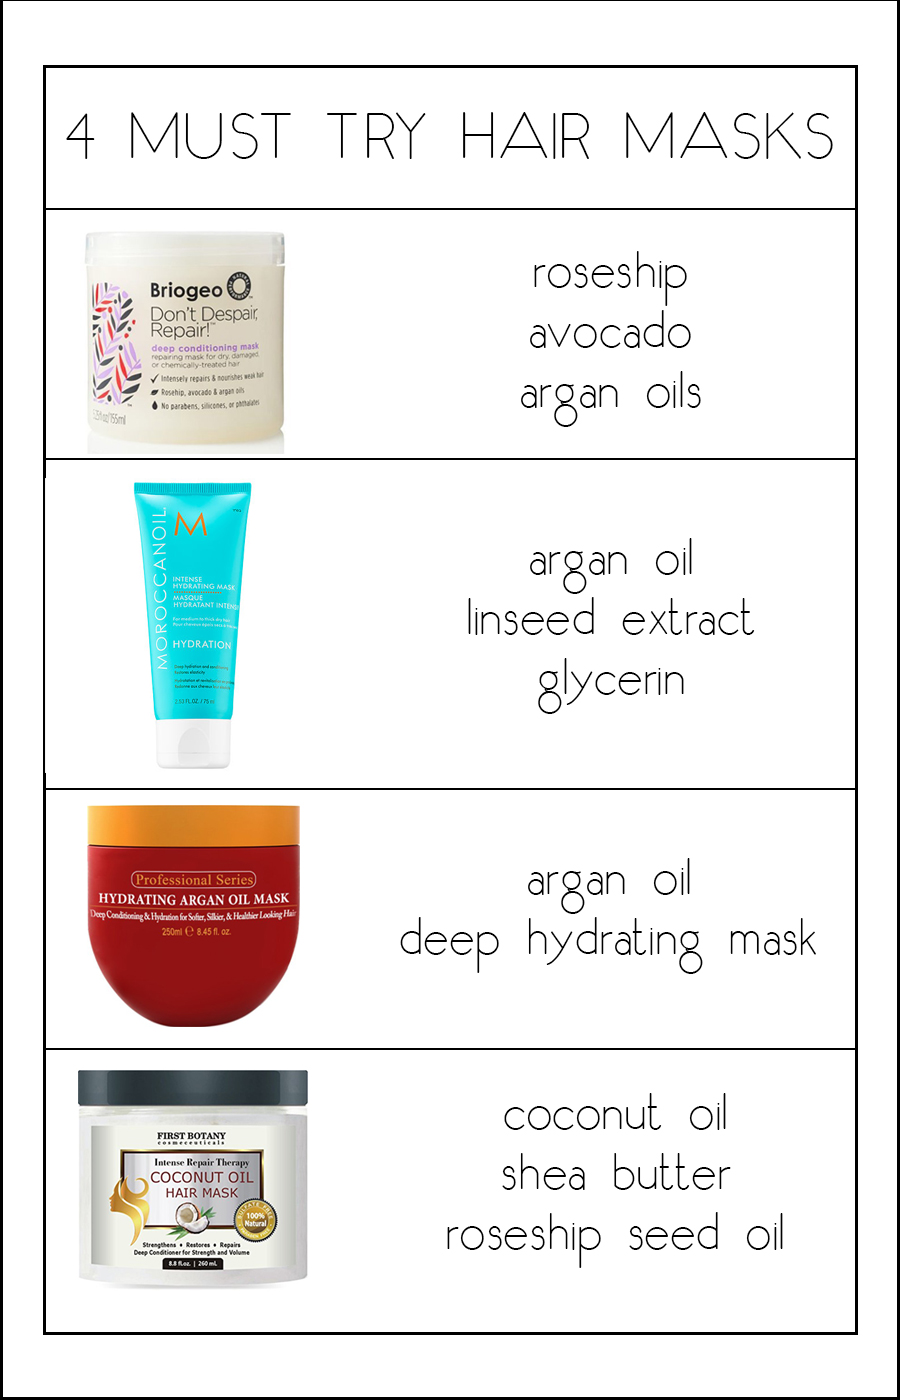 4 must try hair masks for dry, damaged hair